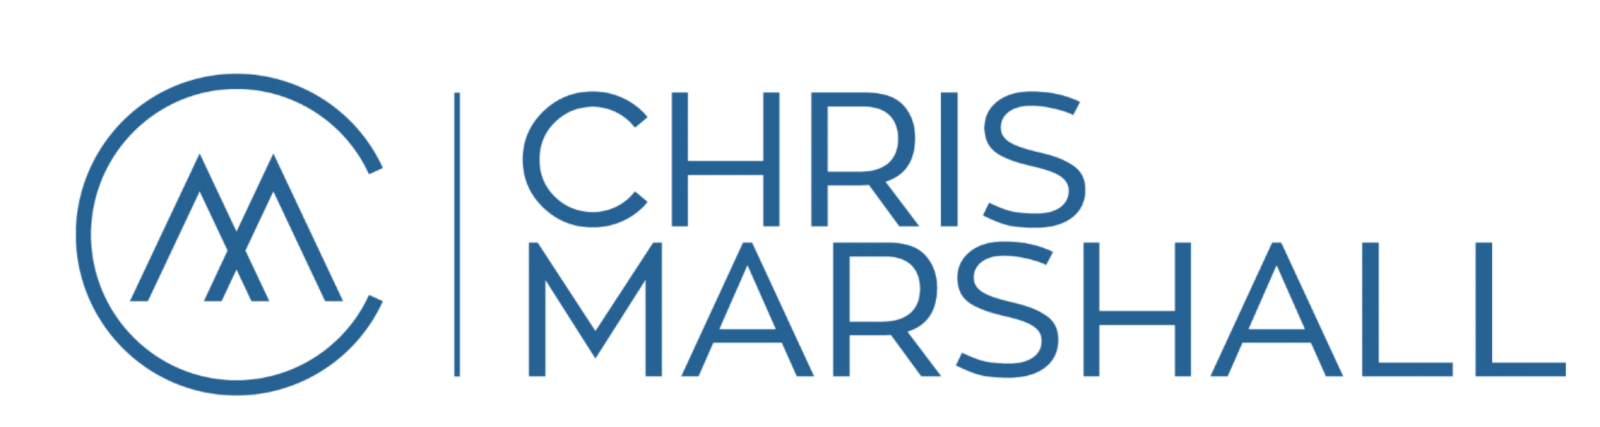 Chris Marshall Calgary Realtor ®